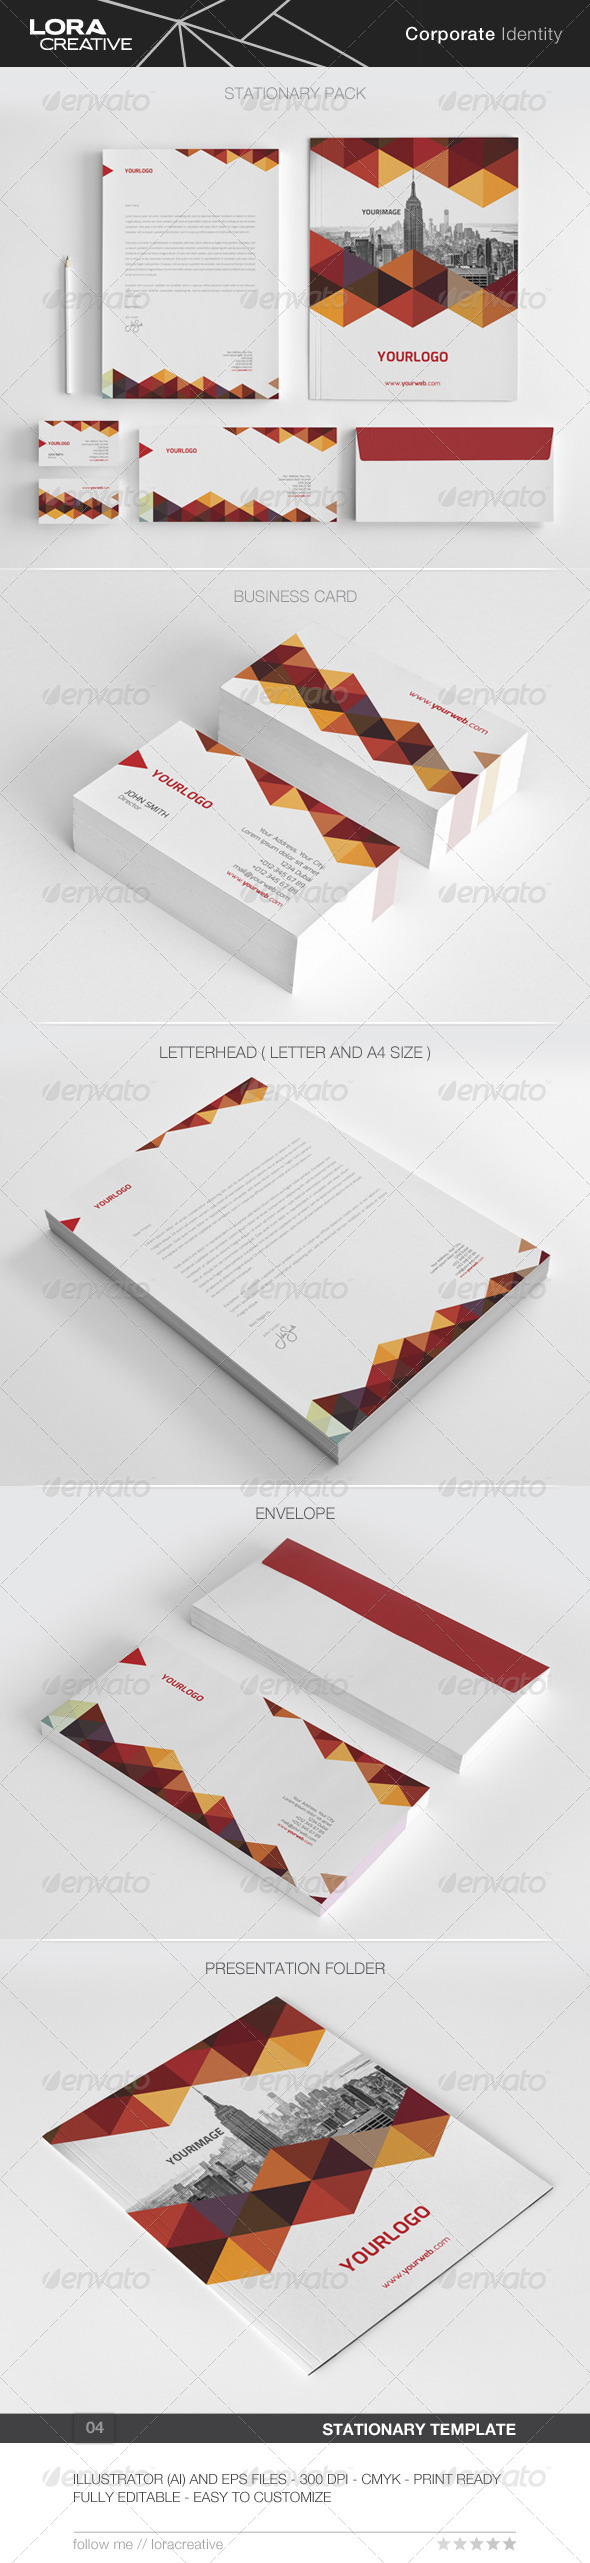 GraphicRiver Modern Stationary Pack 04 8565437